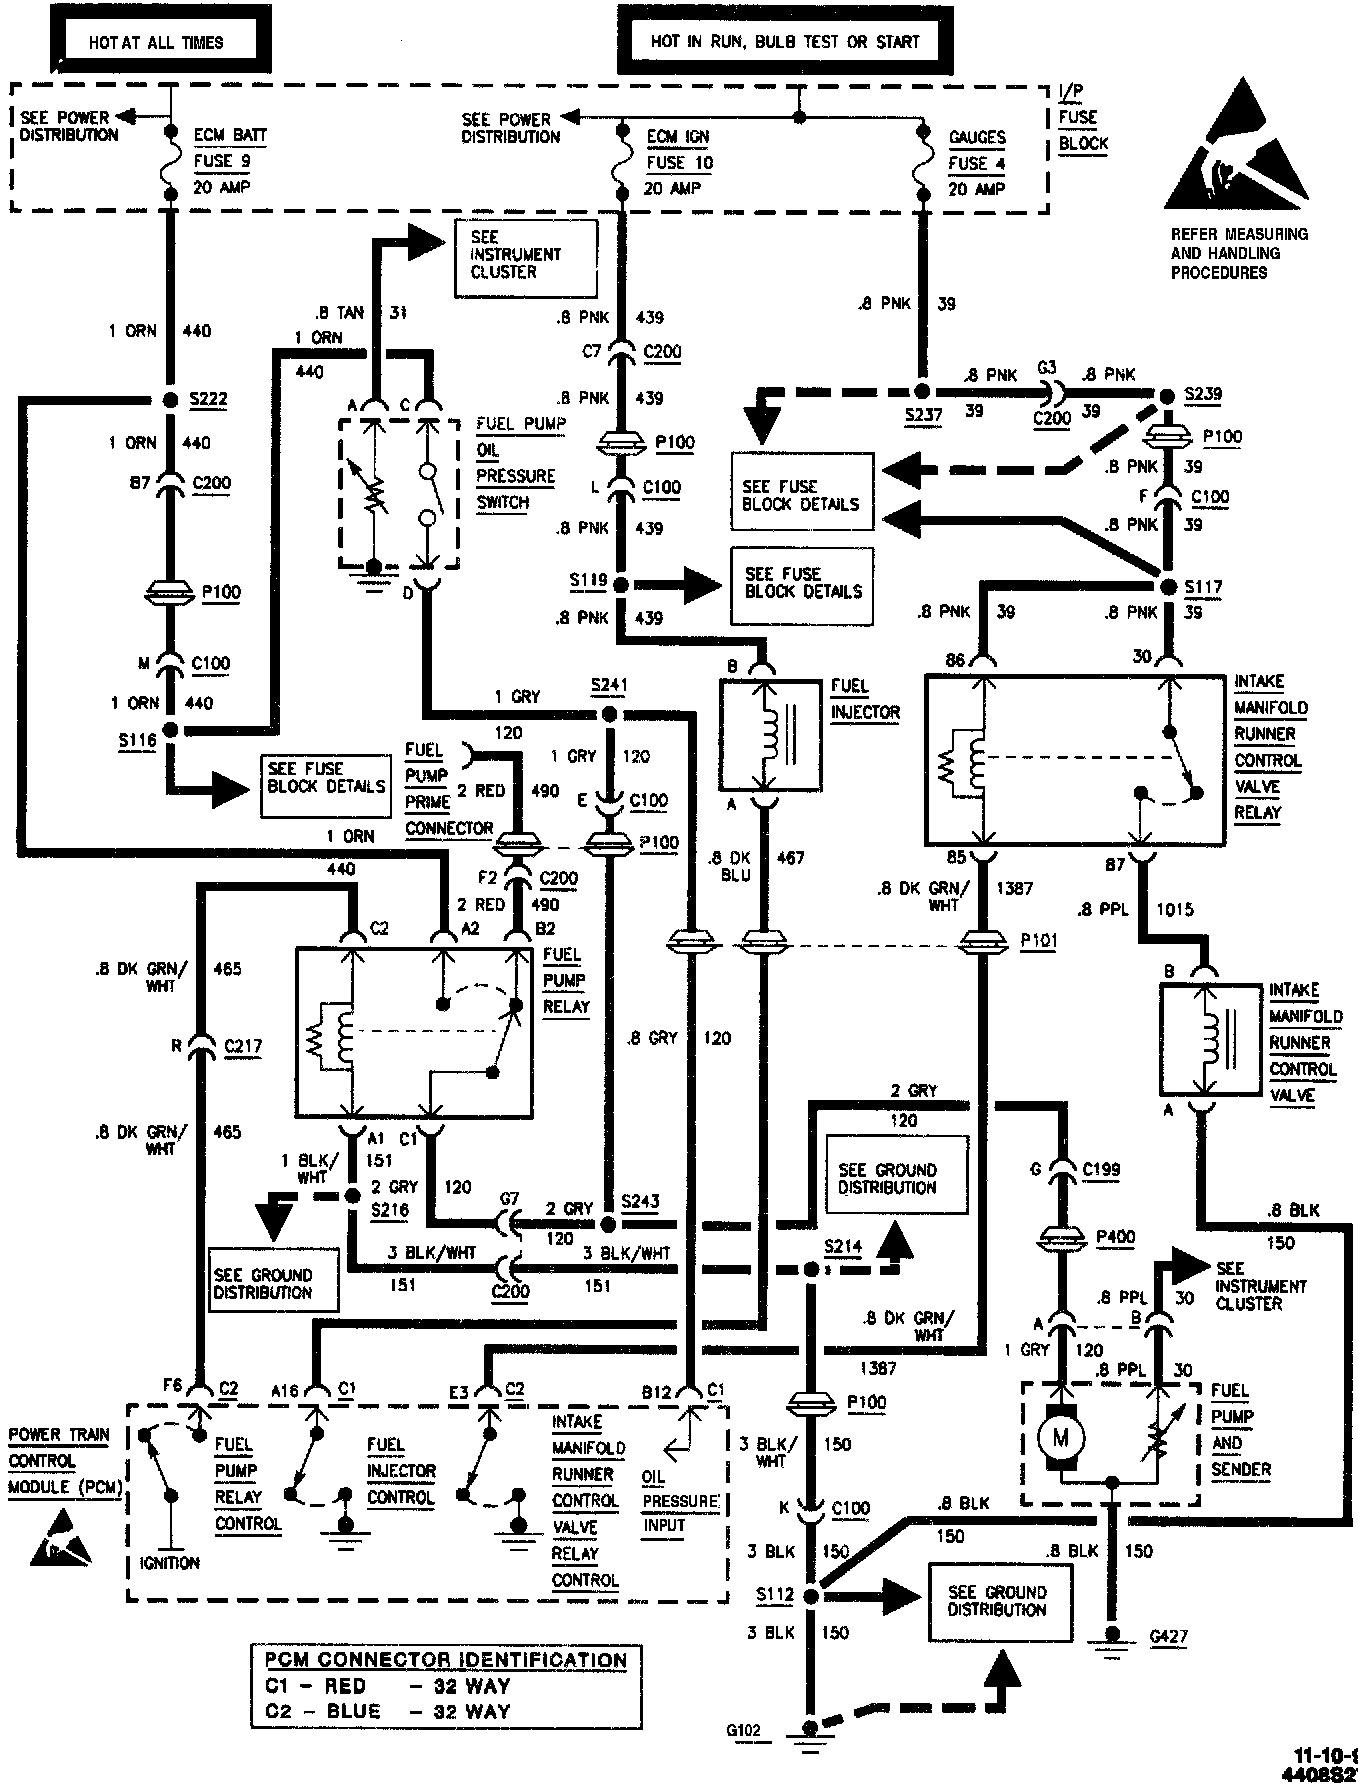 s10 wire diagram 0tq rakanzleiberlin de \u2022